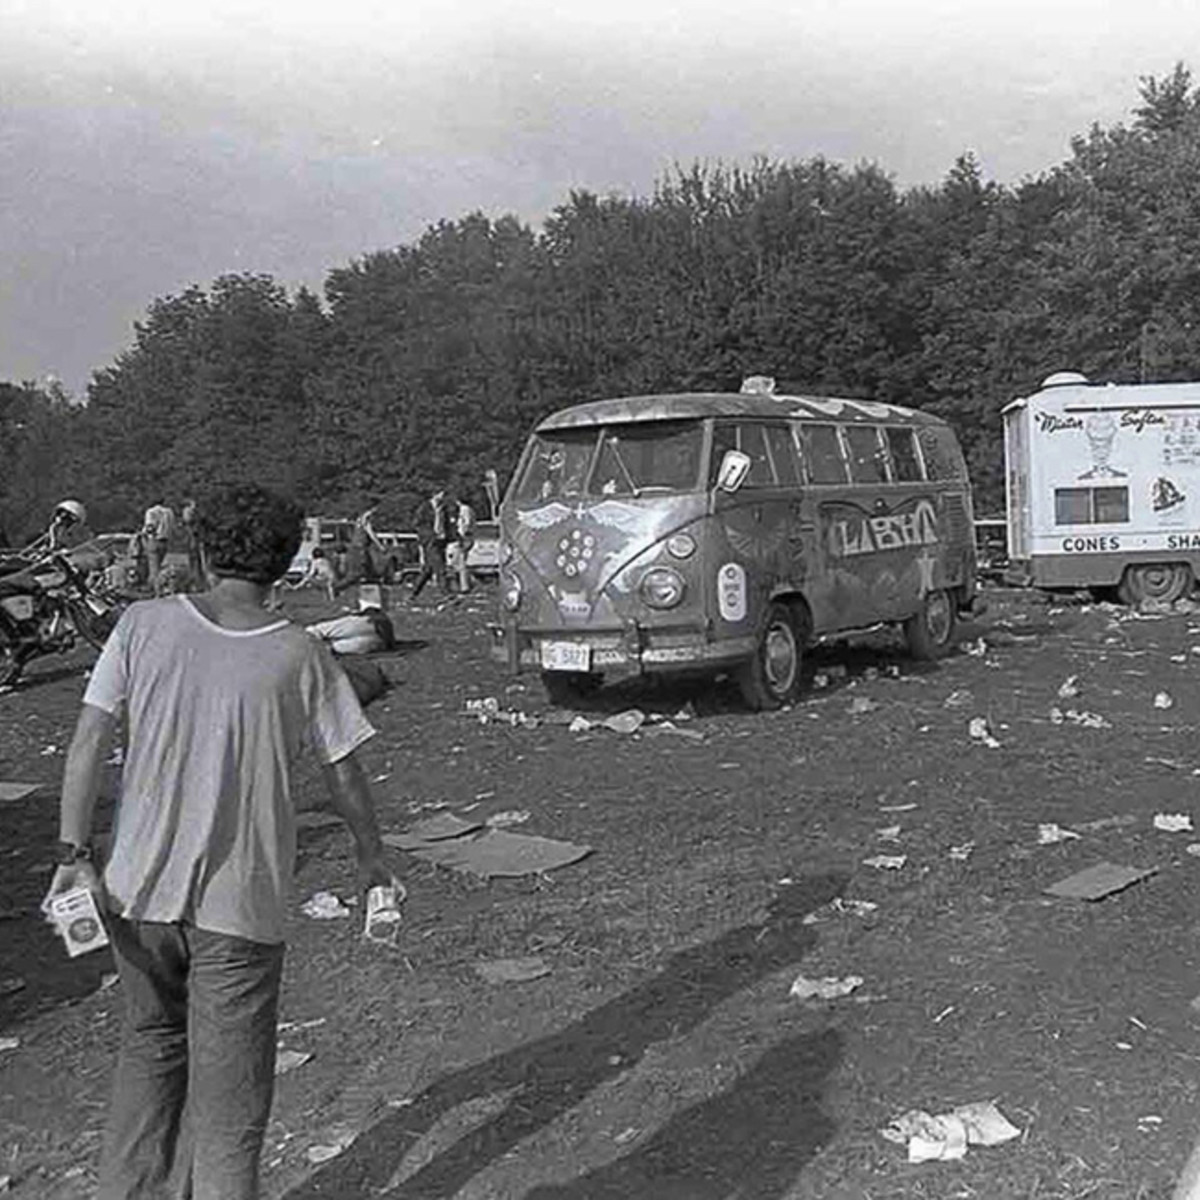 LIGHT Bus the day after Woodstock, August 1969. Photo credit: Rolling Stone Magazine C/O AACA Museum, Inc.